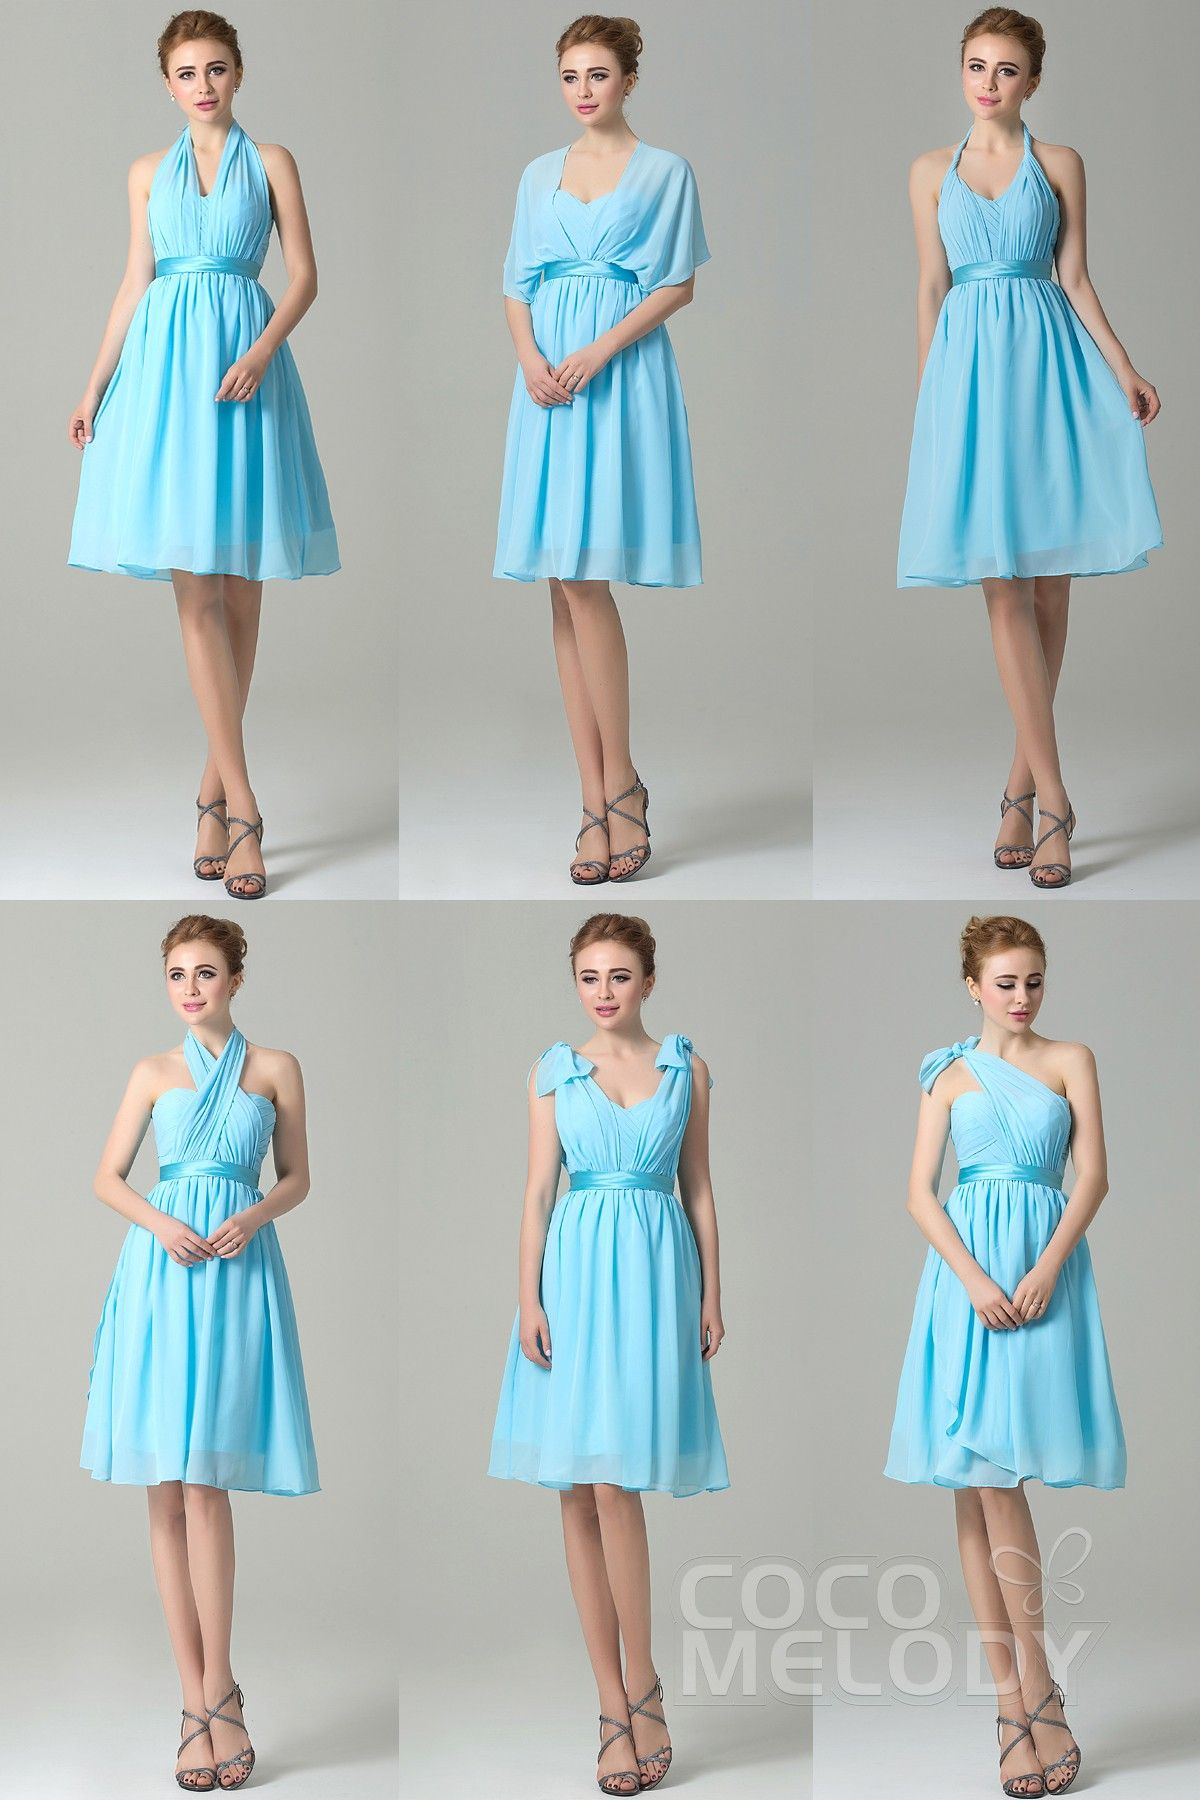 ca1e941b3c55 Classic A-Line Knee Length Chiffon Blue Convertible Bridesmaid Dress with  Ribbons and Draped Streamers COZM14050